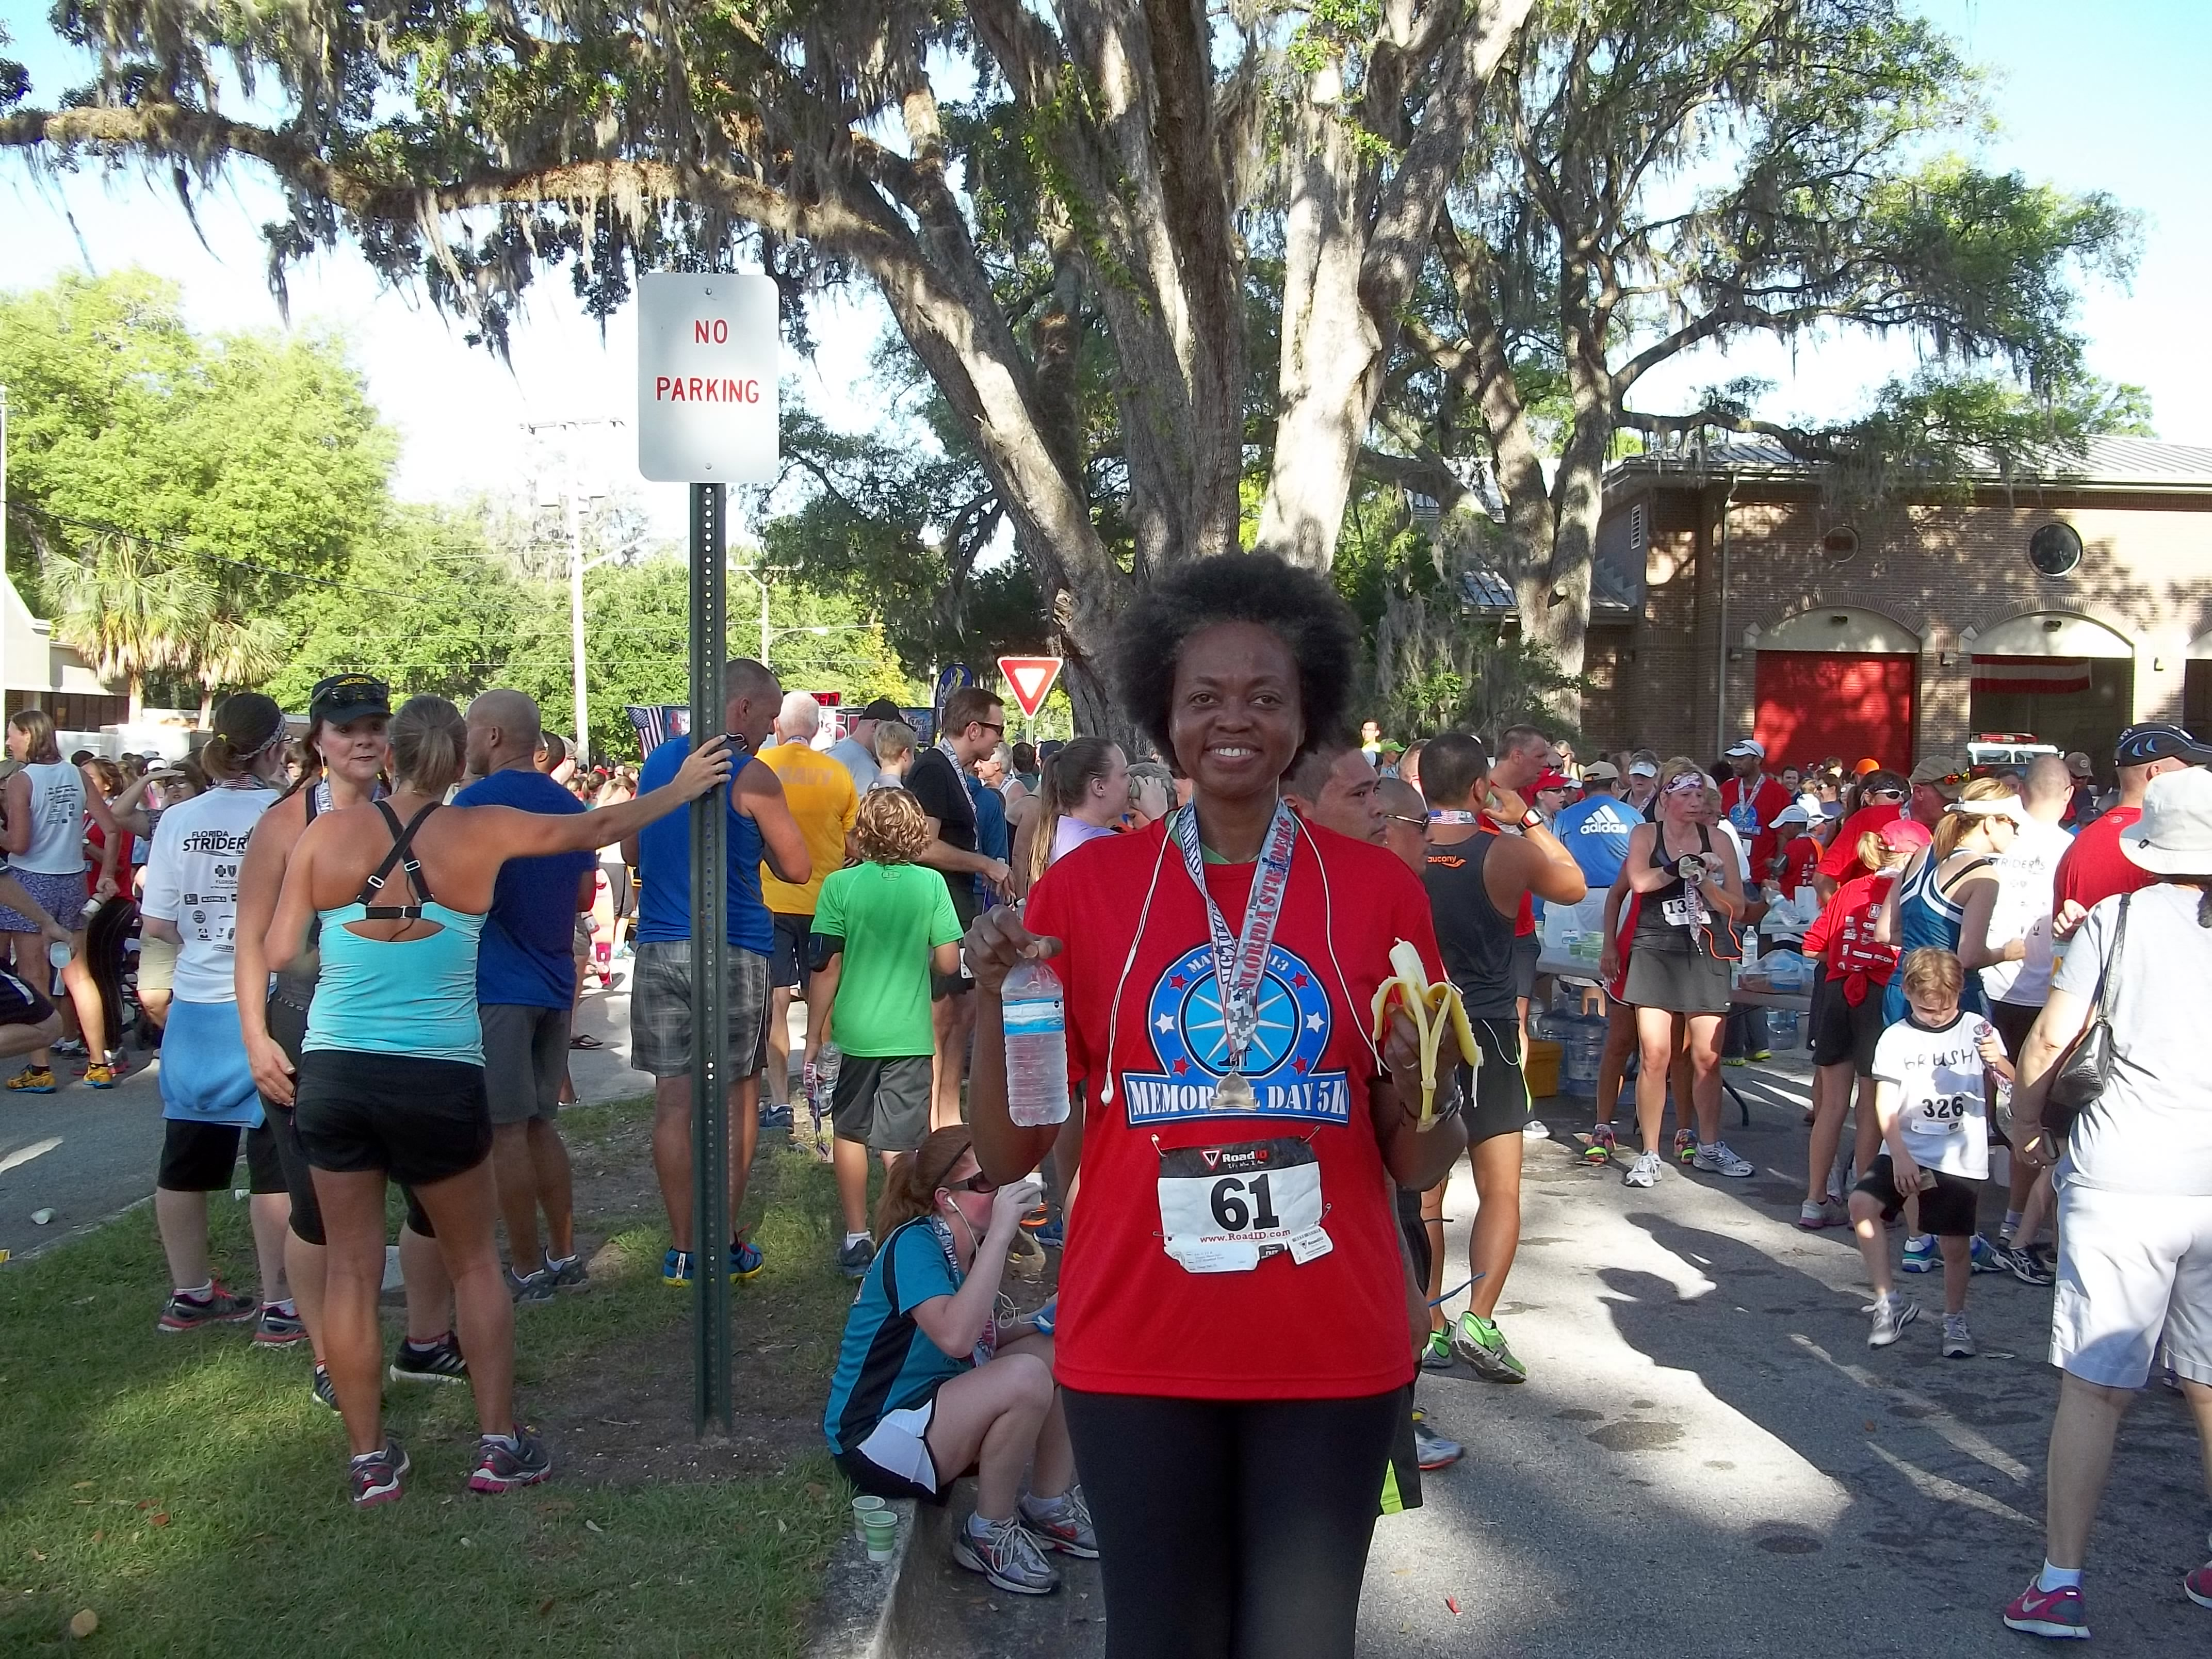 striders-memorial-day-5k-run-may-27-2013-pic-3.jpg